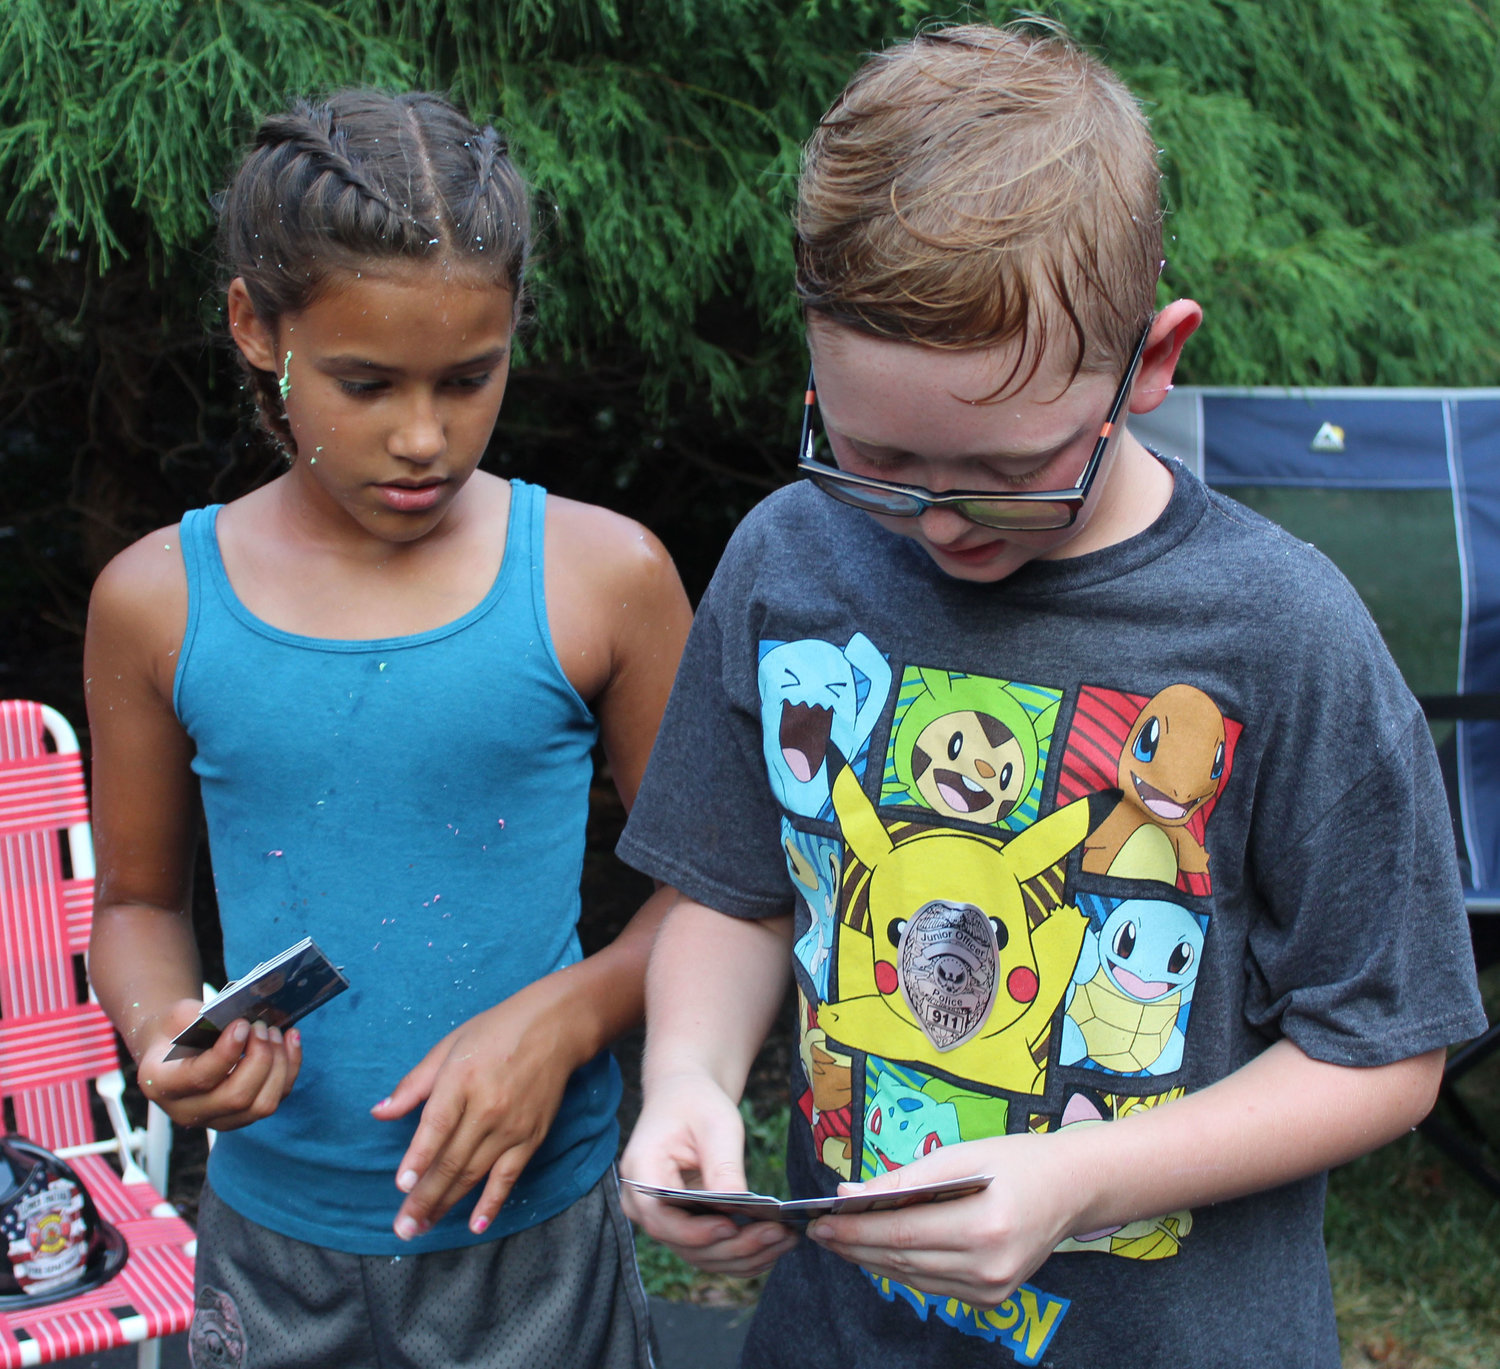 Safia Aman and Gabriel Shaver compare Lower Swatara officer baseball cards during National Night Out in Lower Swatara on Aug. 6.